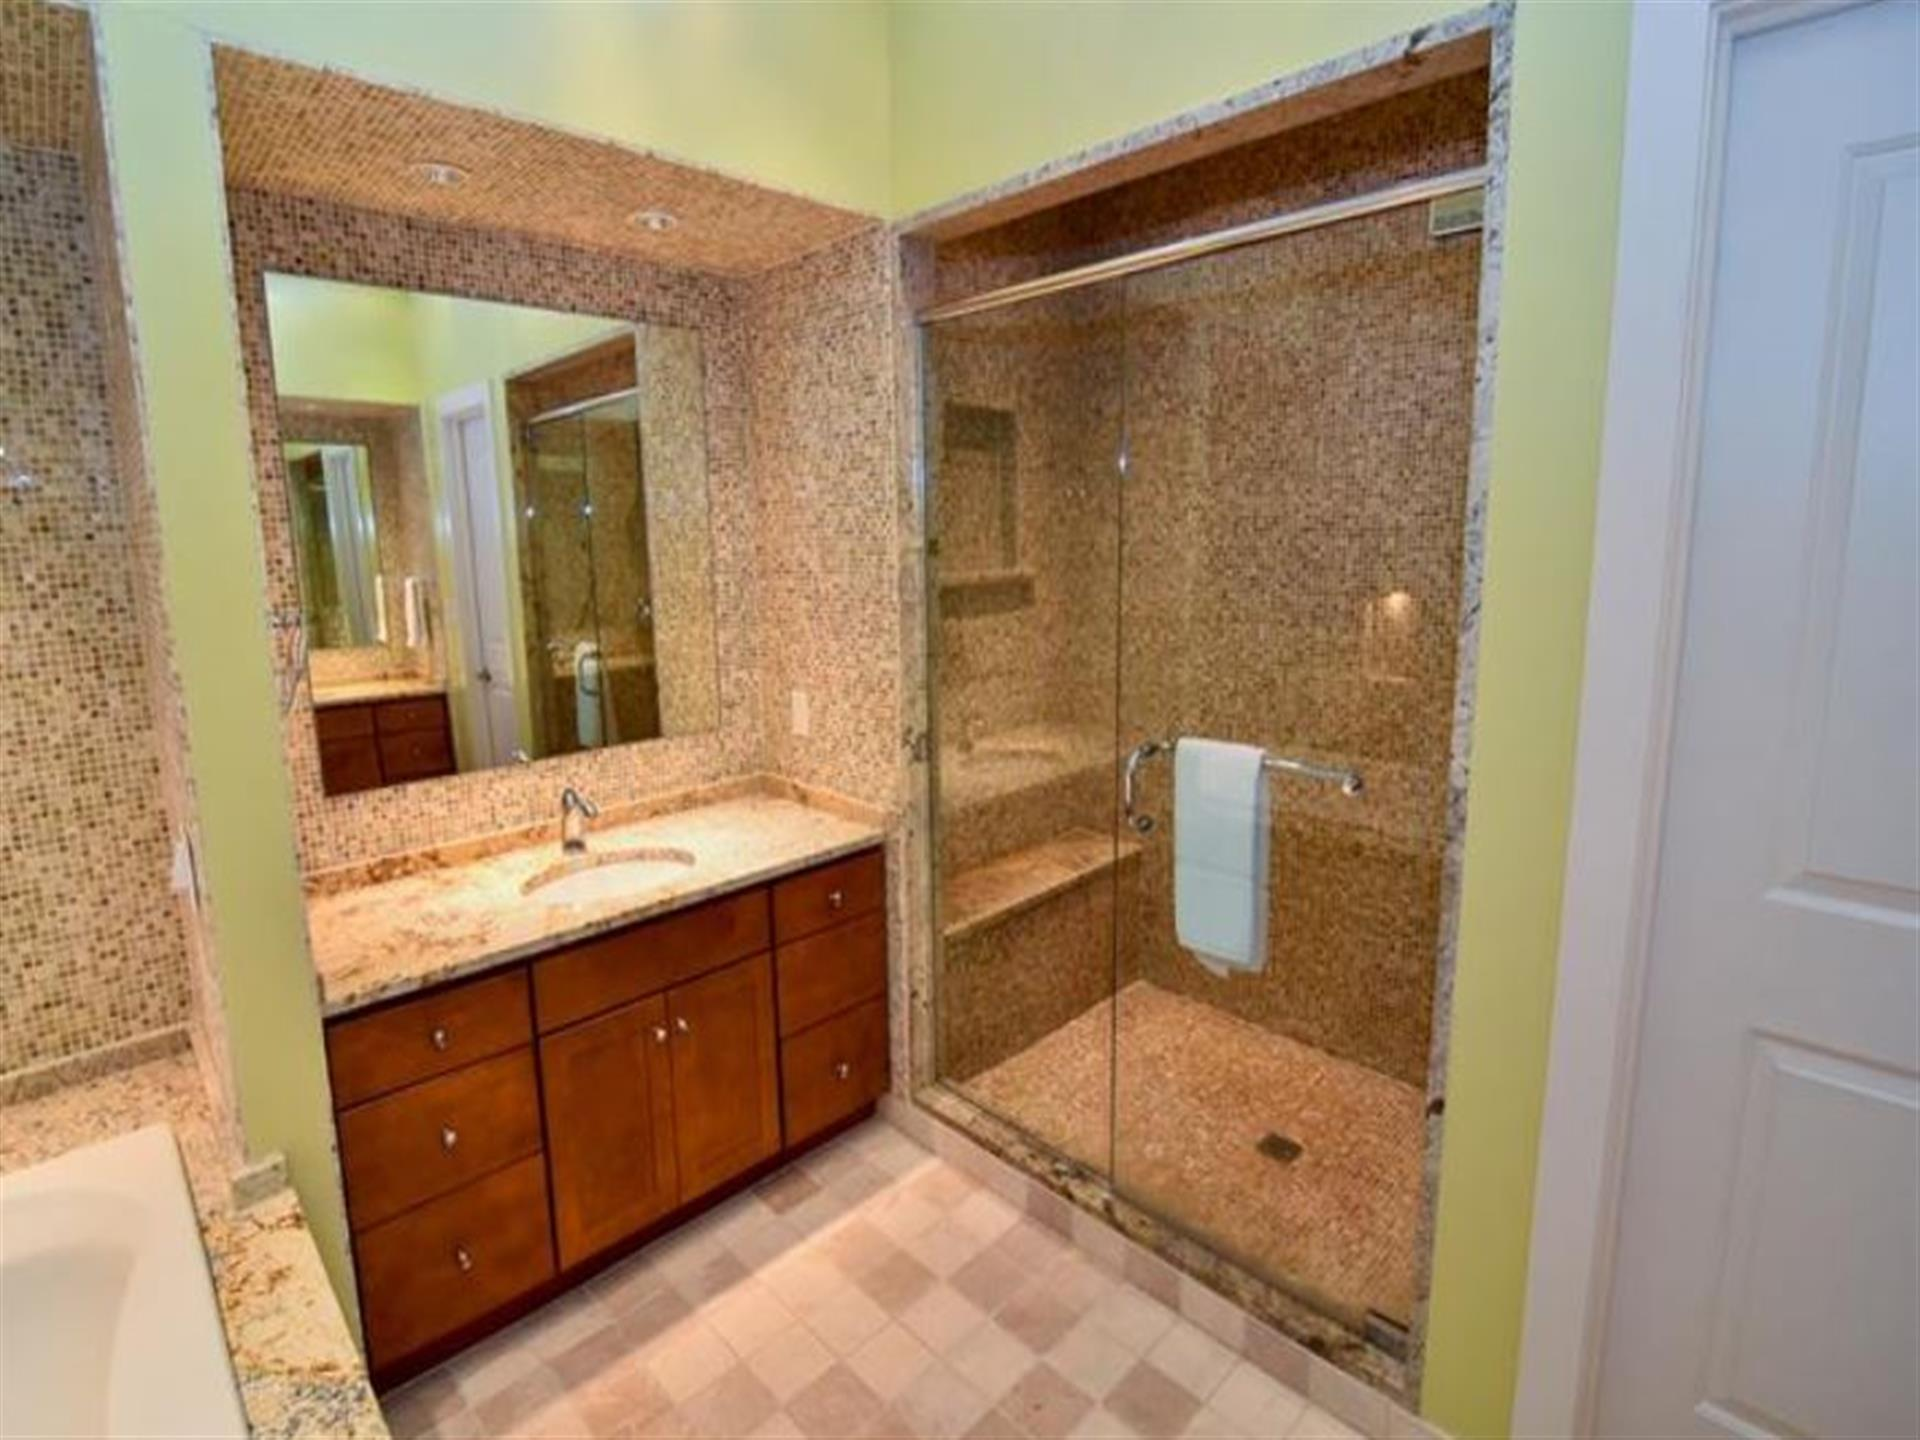 View of a bathroom with a mirror, counter with a sink as well as a shower